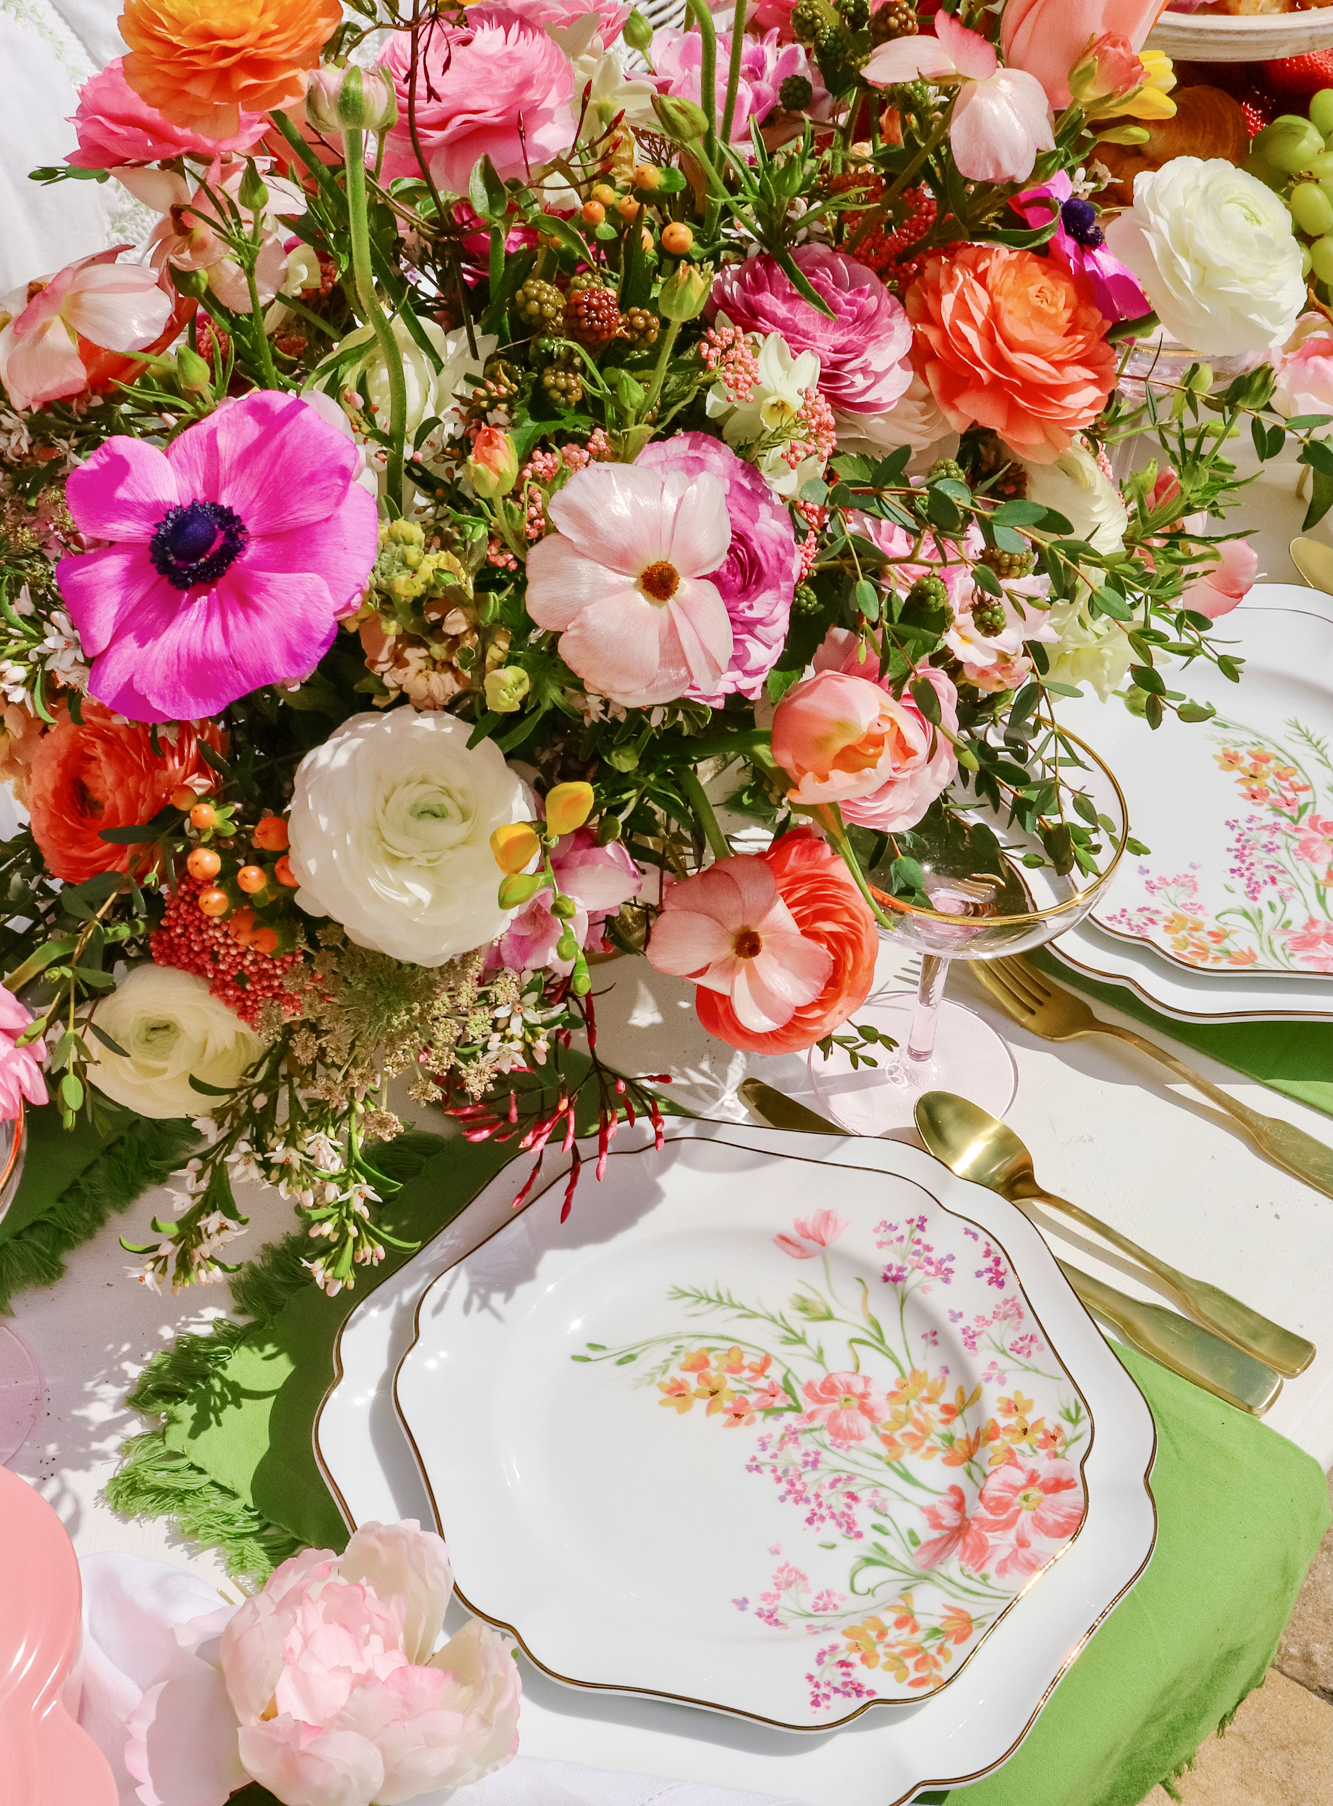 Emma's Birthday Easter Brunch celebration! Inspiration for spring tablescapes, bridal shower ideas, baby shower brunch or anything.